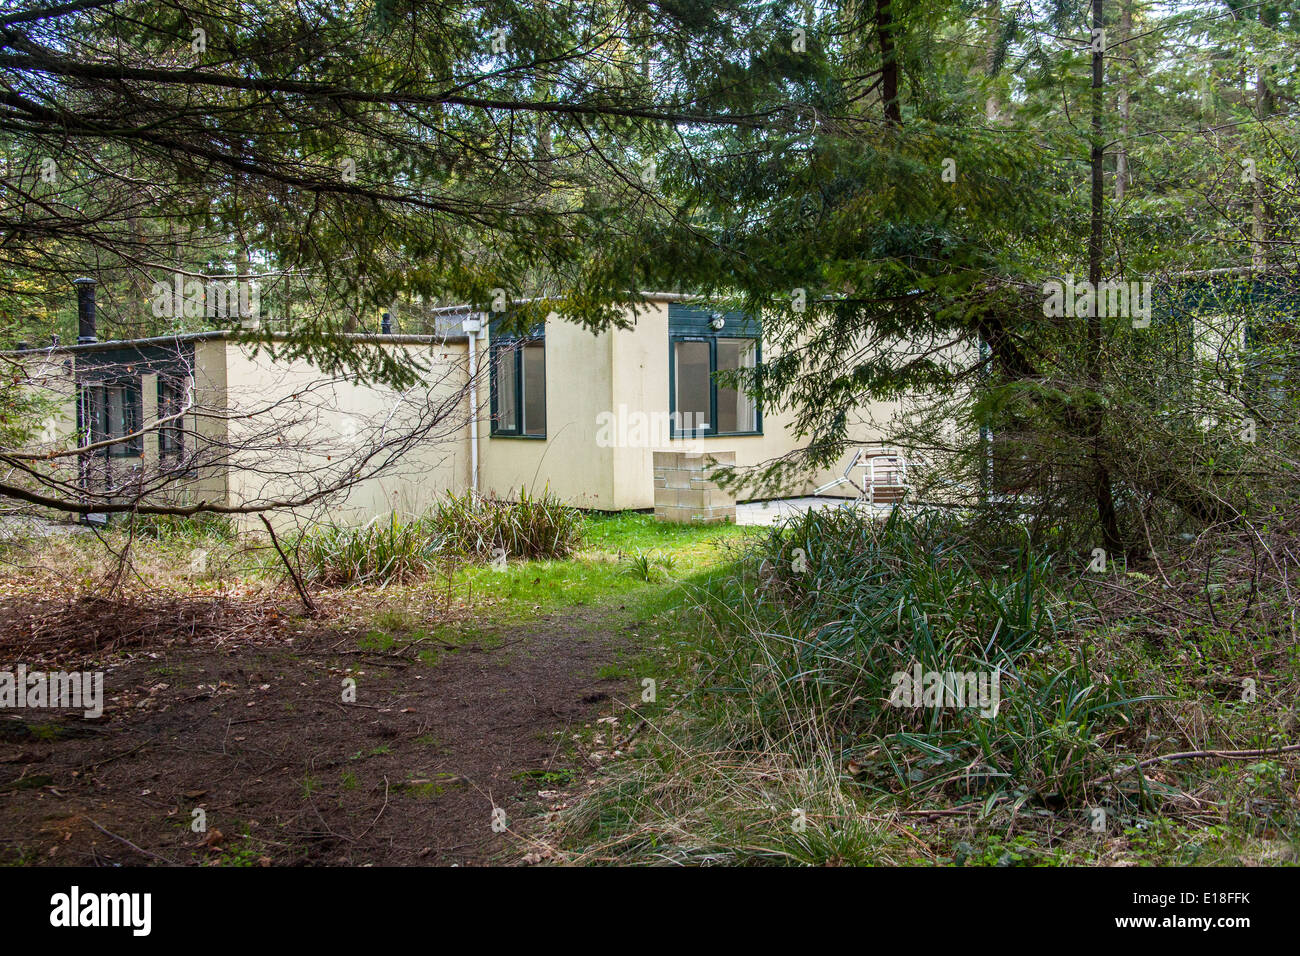 Woodland Lodges At Center Parcs Longleat Forest Wiltshire England Stock Photo Royalty Free